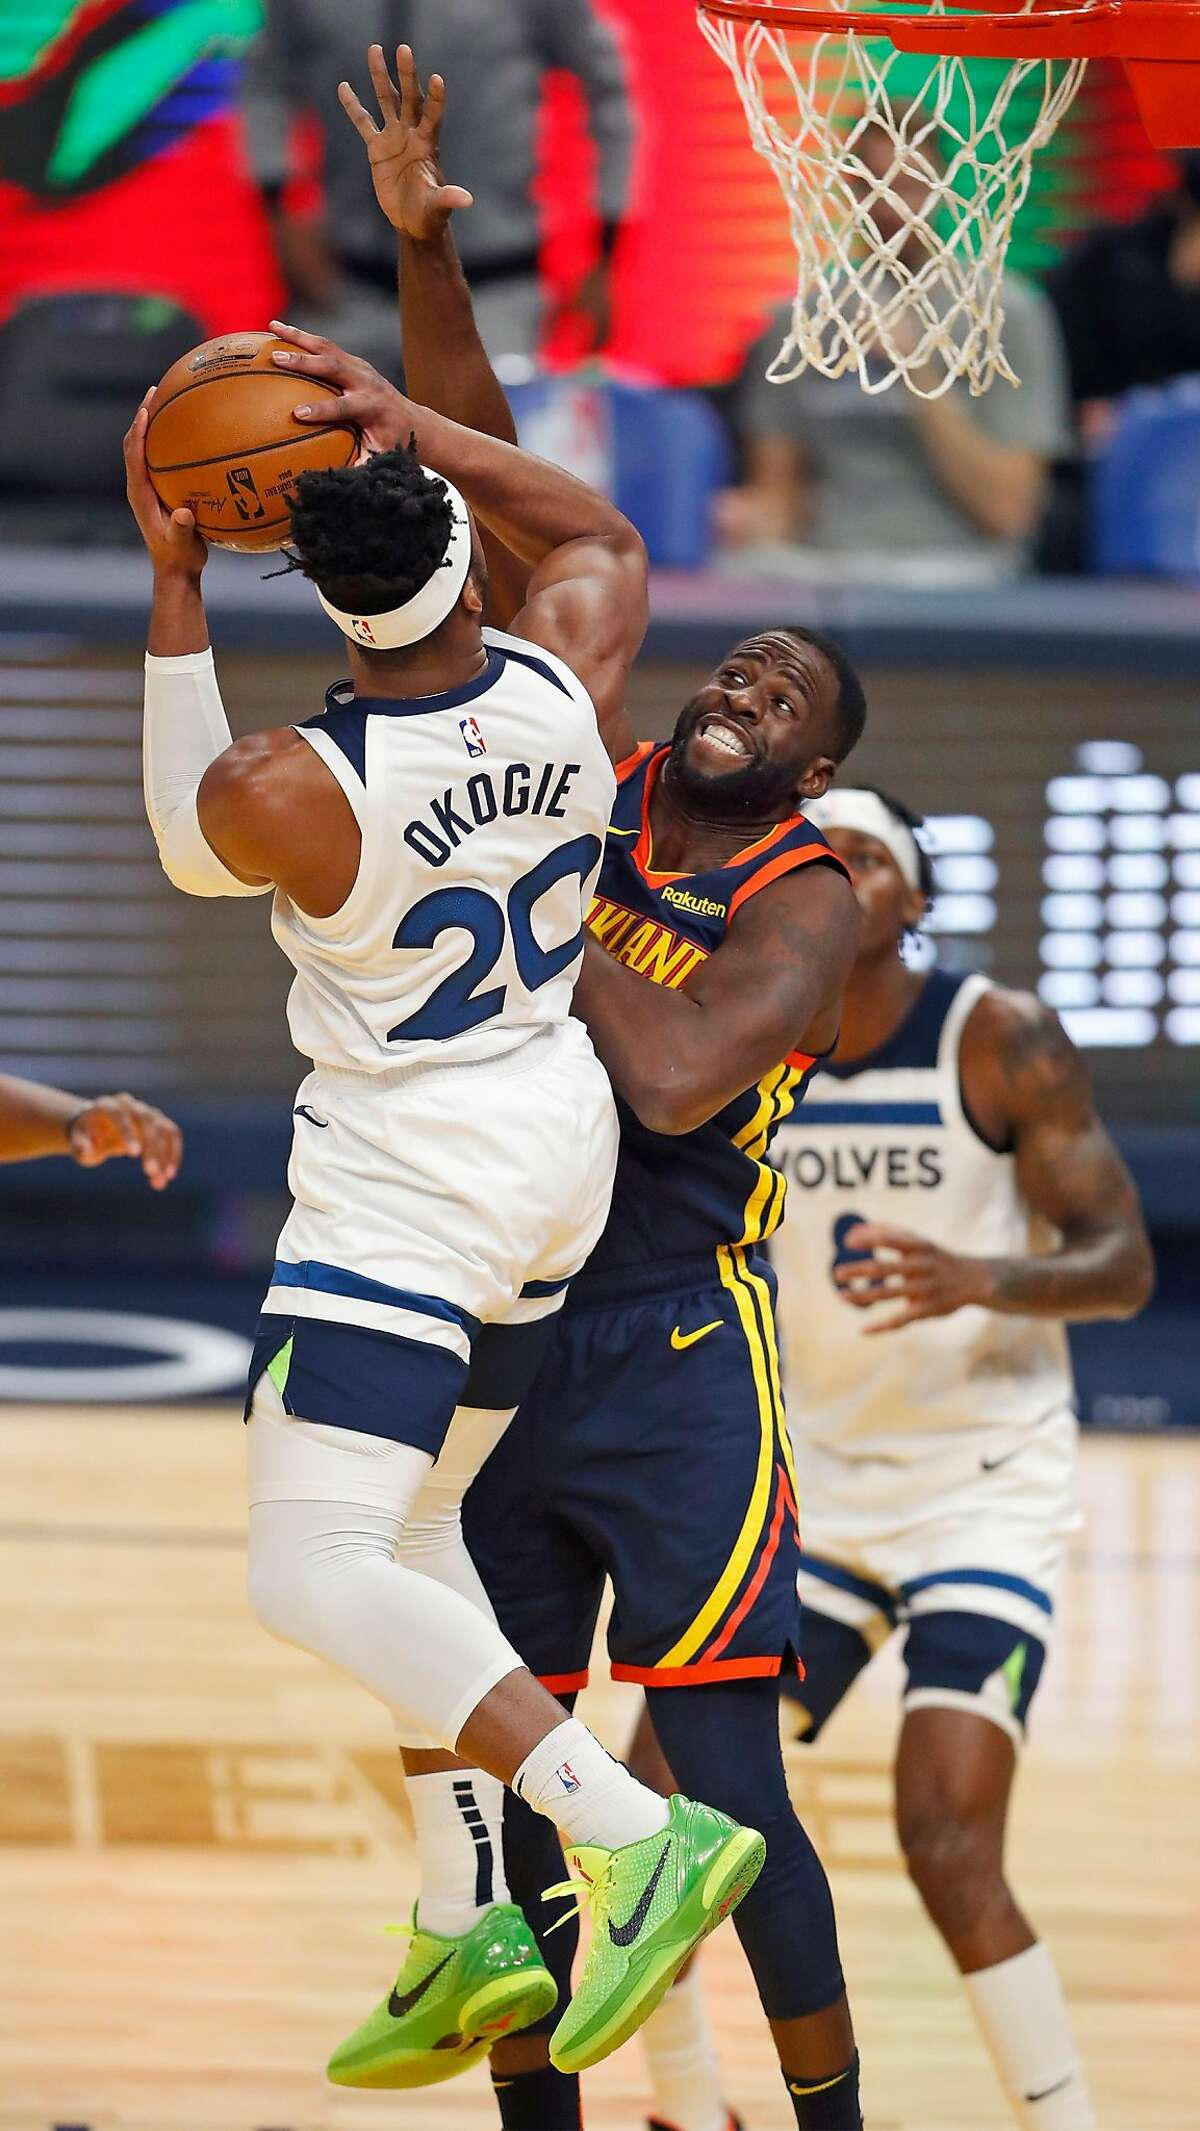 Golden State Warriors' Draymond Green defends against Minnesota Timberwolves' Josh Okogie in 1st quarter during NBA game at Chase Center in San Francisco, Calif., on Wednesday, January 27, 2021.